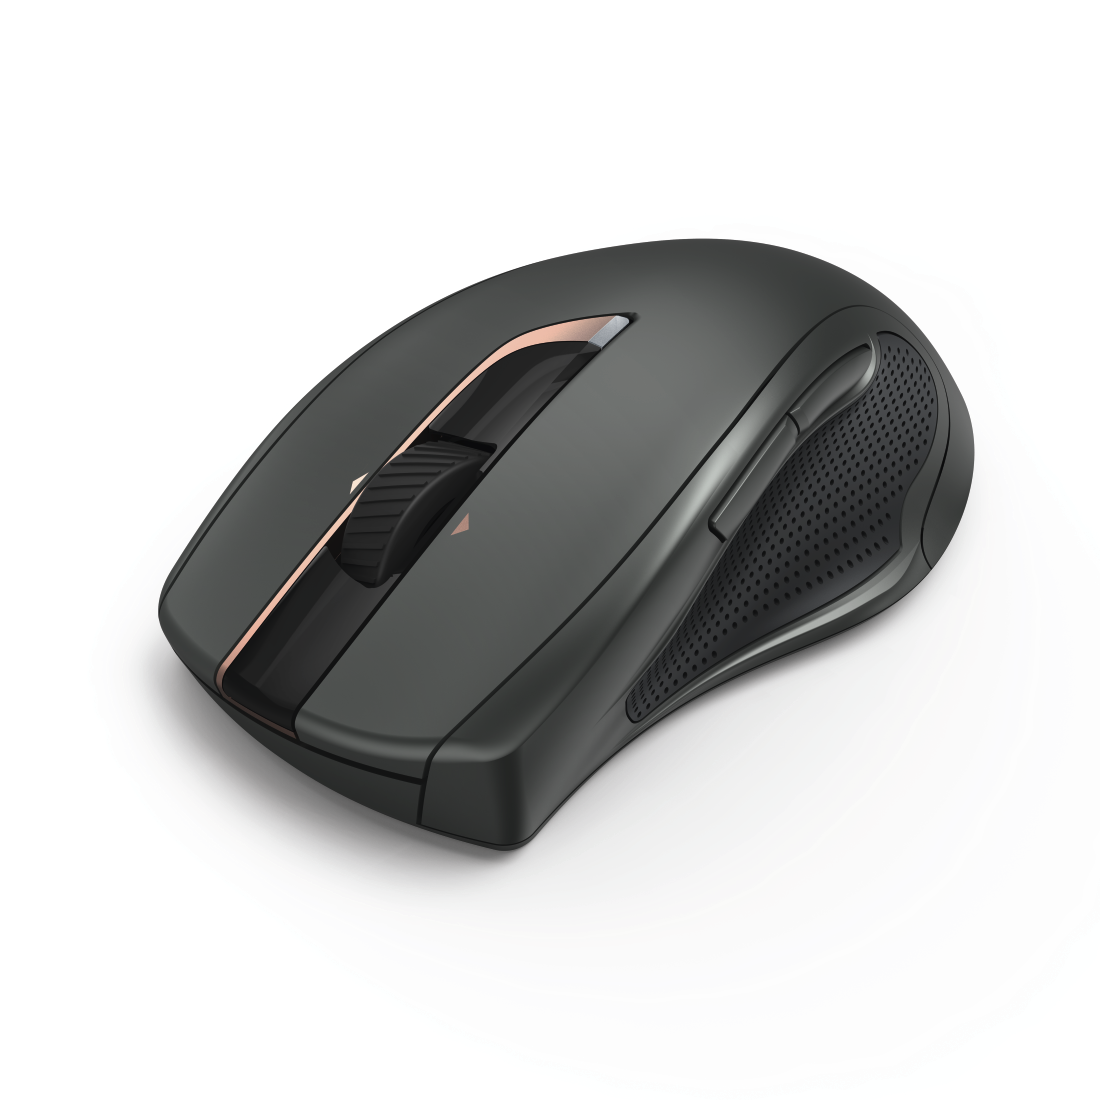 abx High-Res Image - Hama, 7-Button Mouse MW-900, black